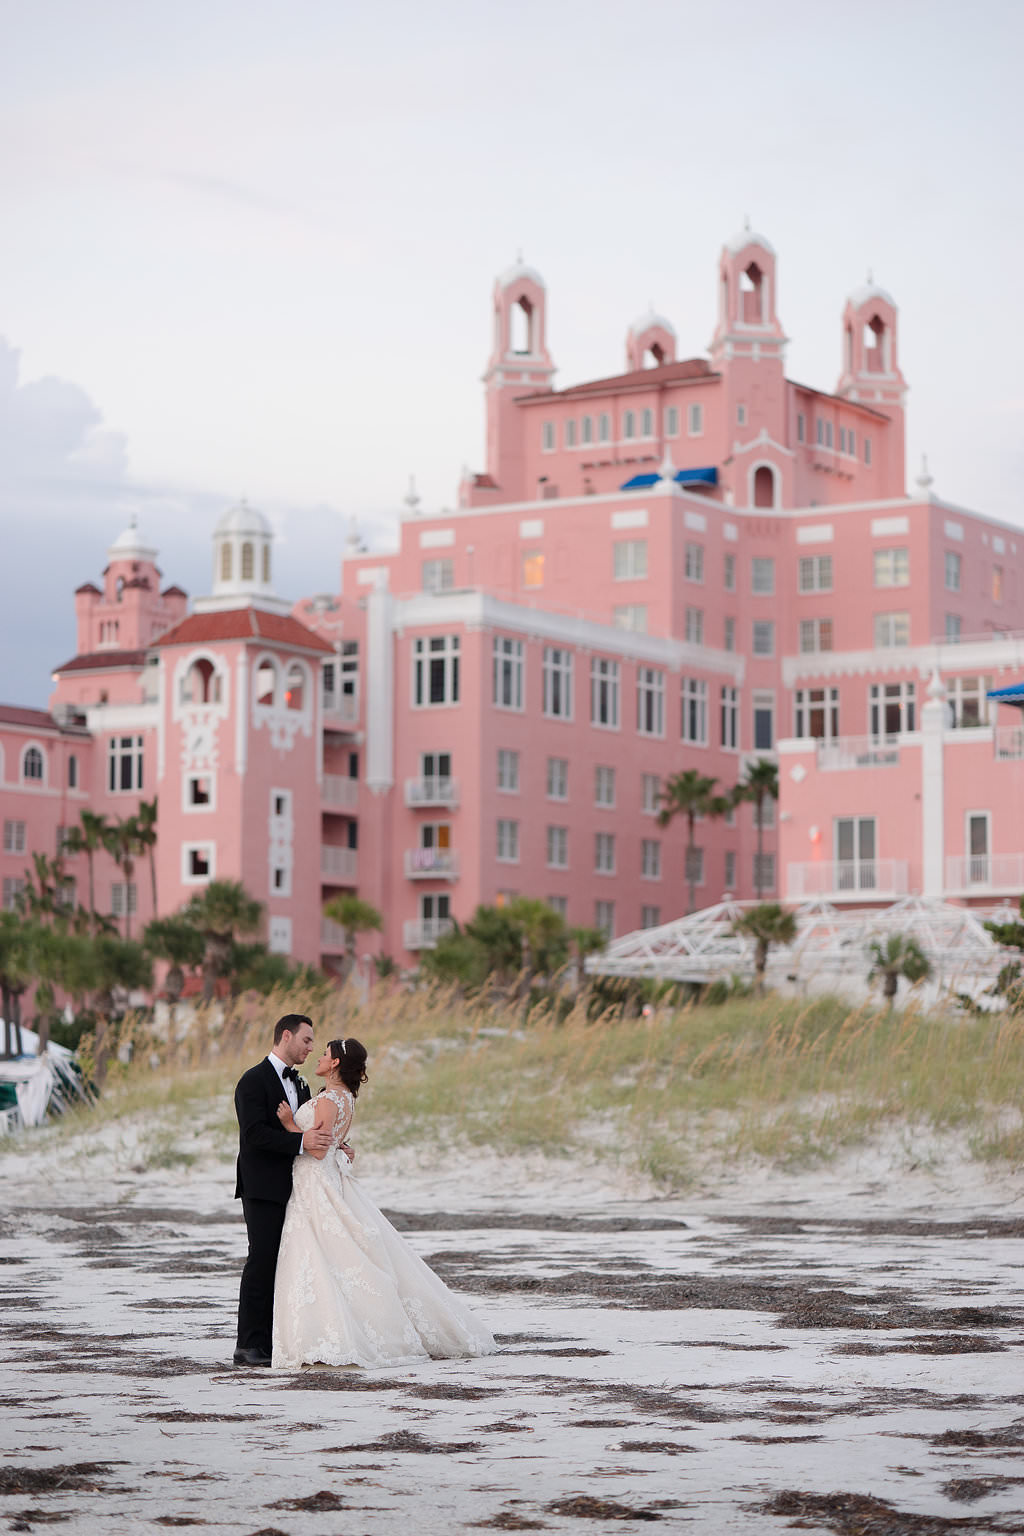 Outdoor Beach Sunset Wedding Portrait, Groom in Black Tux with Bow Tie and White Floral Boutonniere, Bride in Lace Cap Sleeve Belted A Frame Pronovias Dress | Tampa Bay Wedding Photographer Marc Edwards Photographs | St Pete Beach Historic Hotel Wedding Venue The Don CeSar